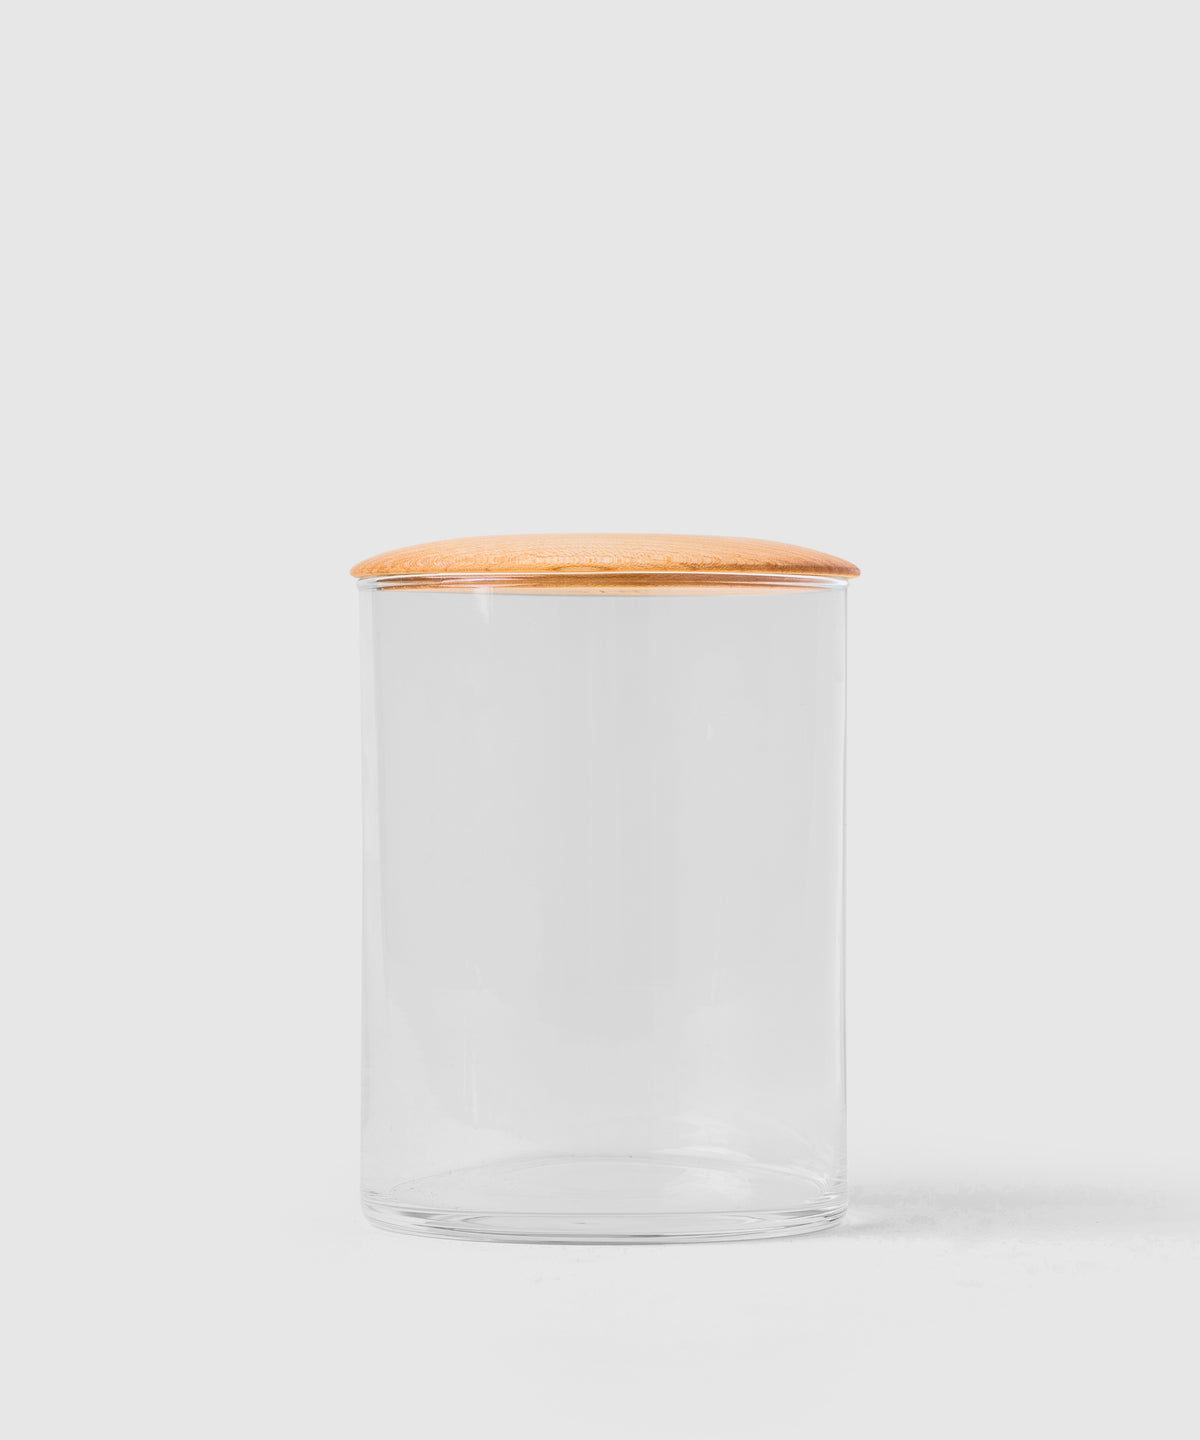 Glass & Wood Storage Container for Kitchen & Bath - 64 oz.